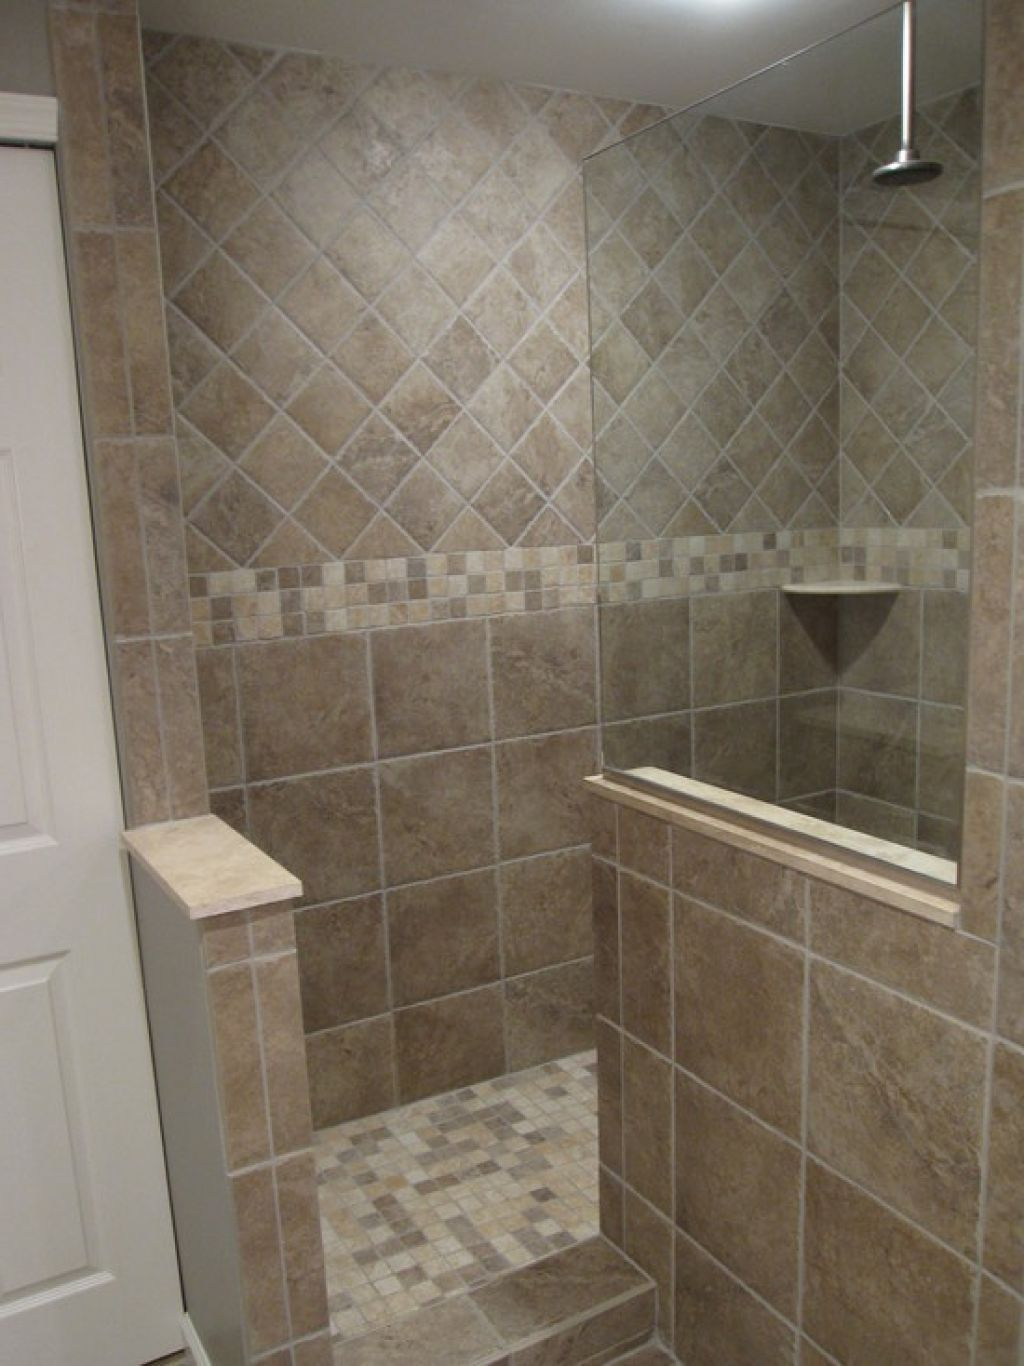 Bathroom , The Required Size of Doorless Walk in Shower